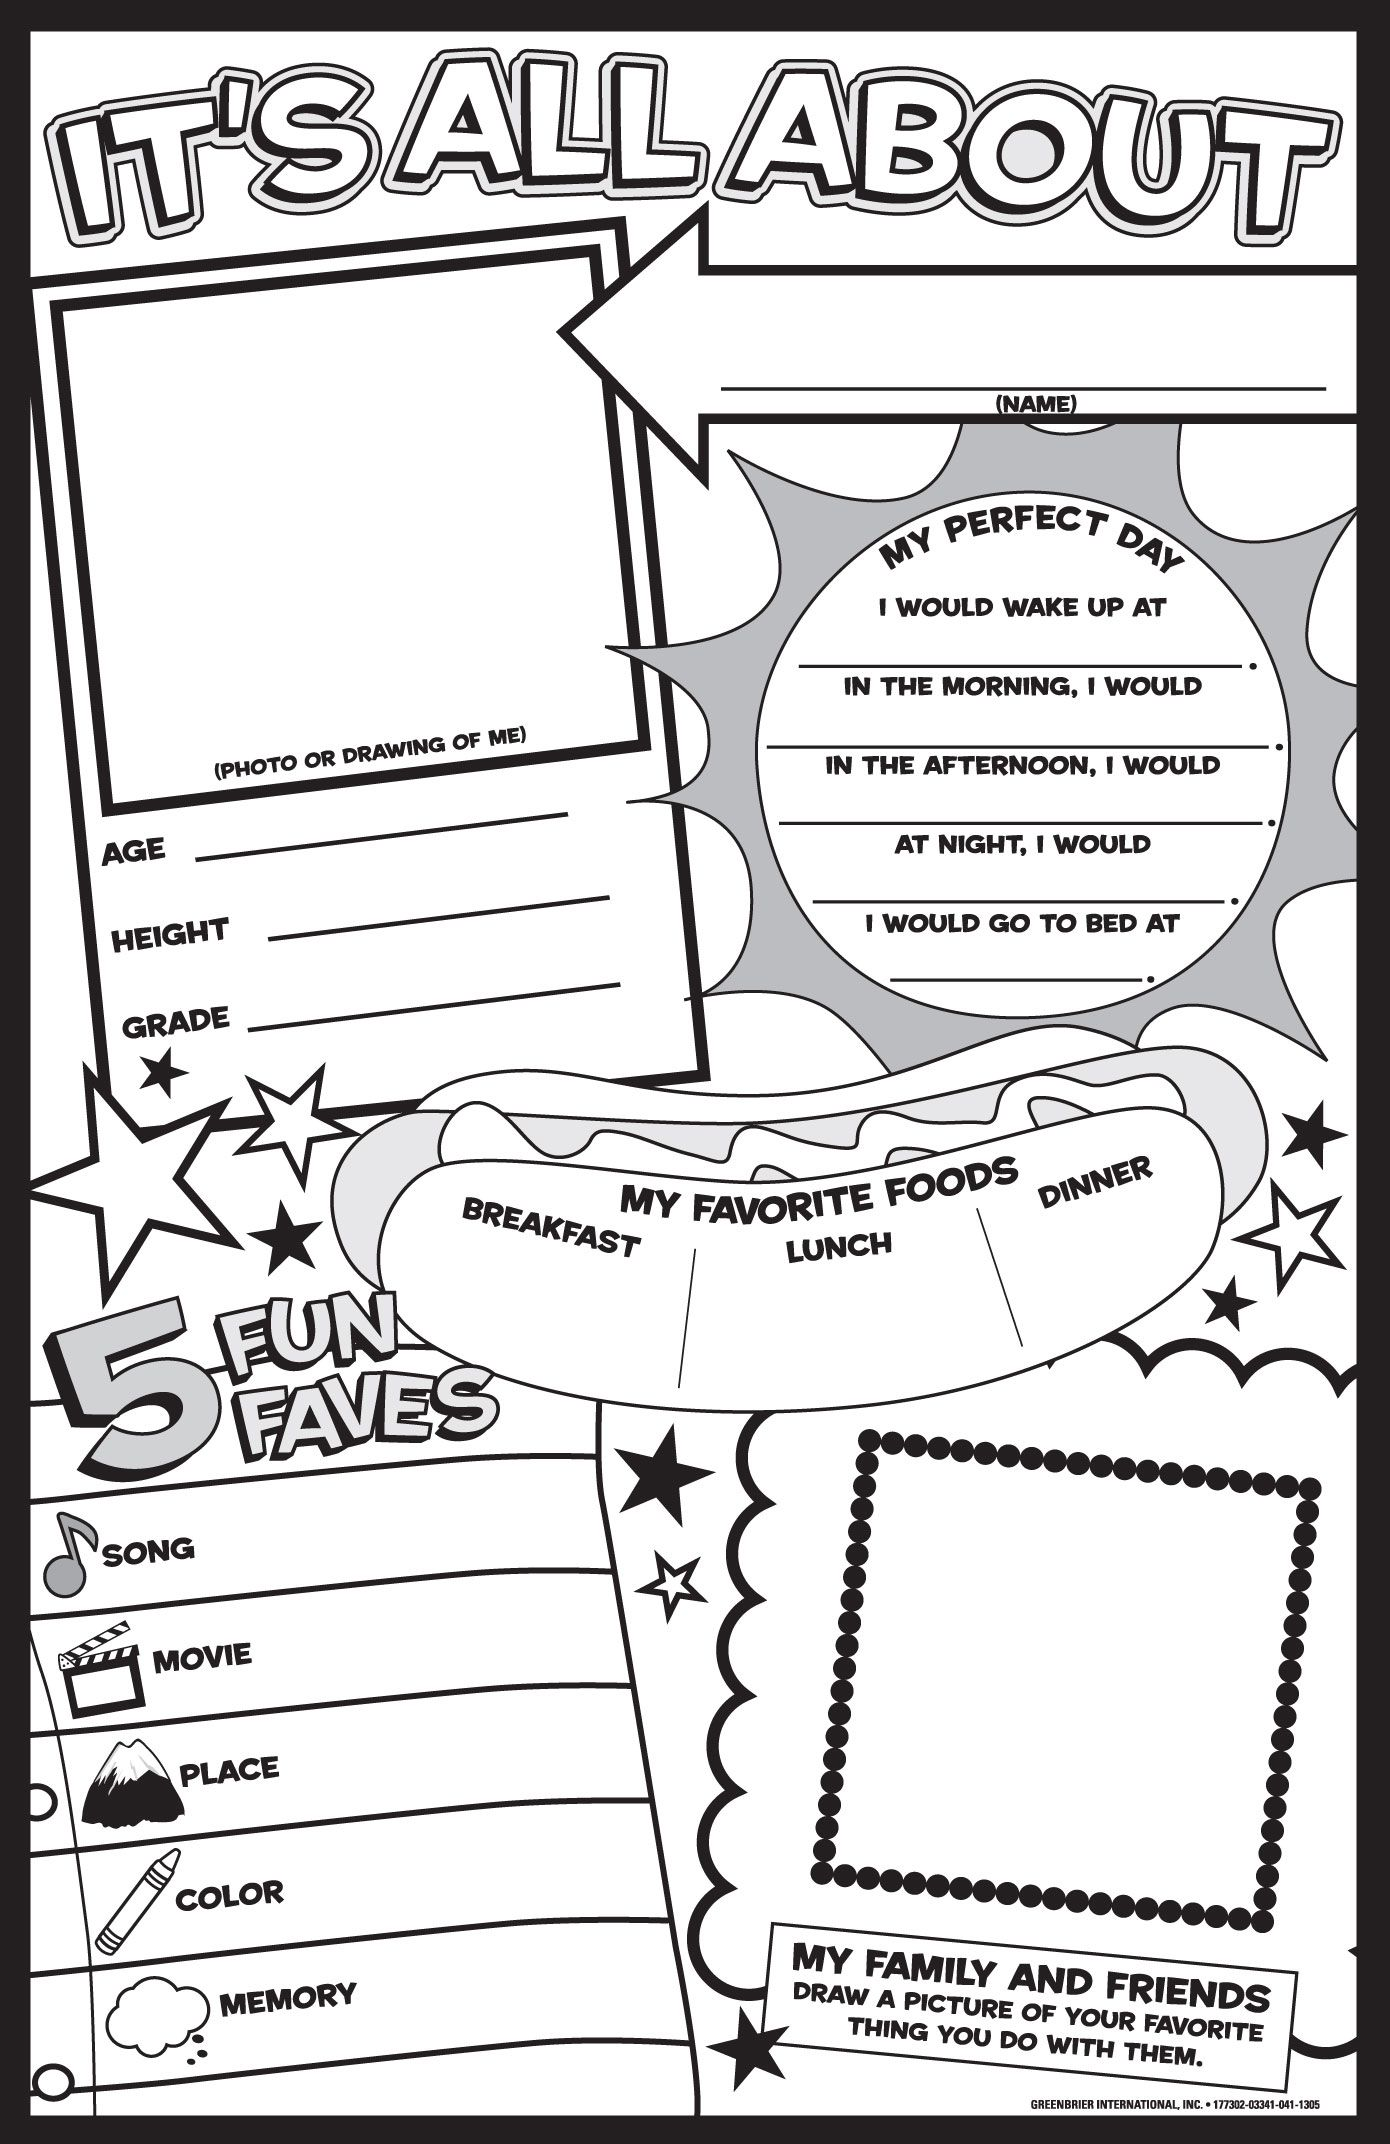 worksheet All About Me Worksheet For Adults all about me worksheets printables instant personal poster sets 6 best images of free printable posters template worksheet and w